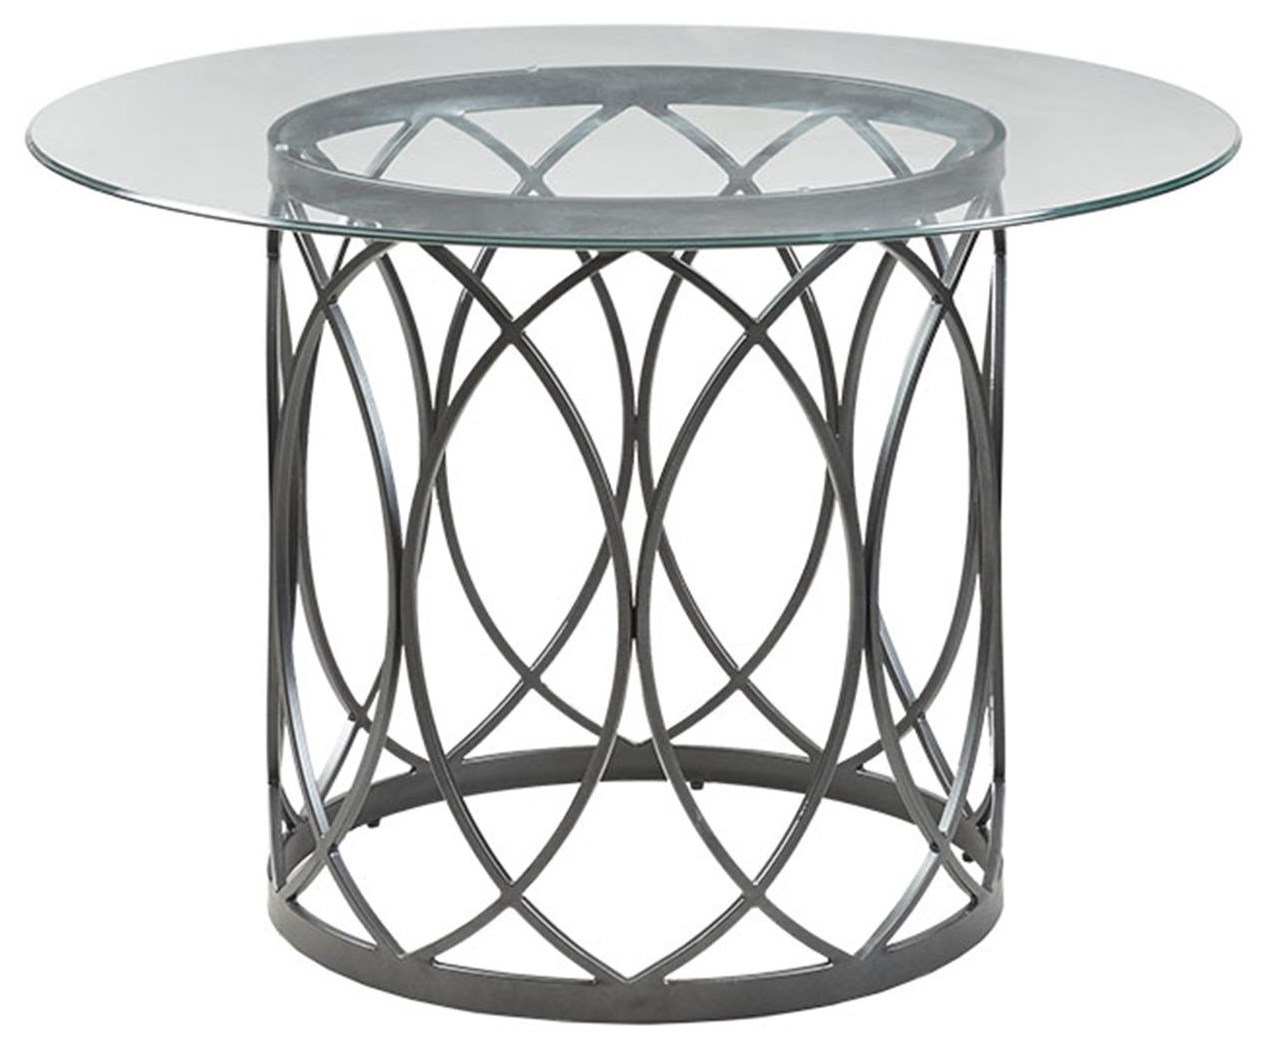 Home Accents Metal and Glass Round Table at Belfort Furniture